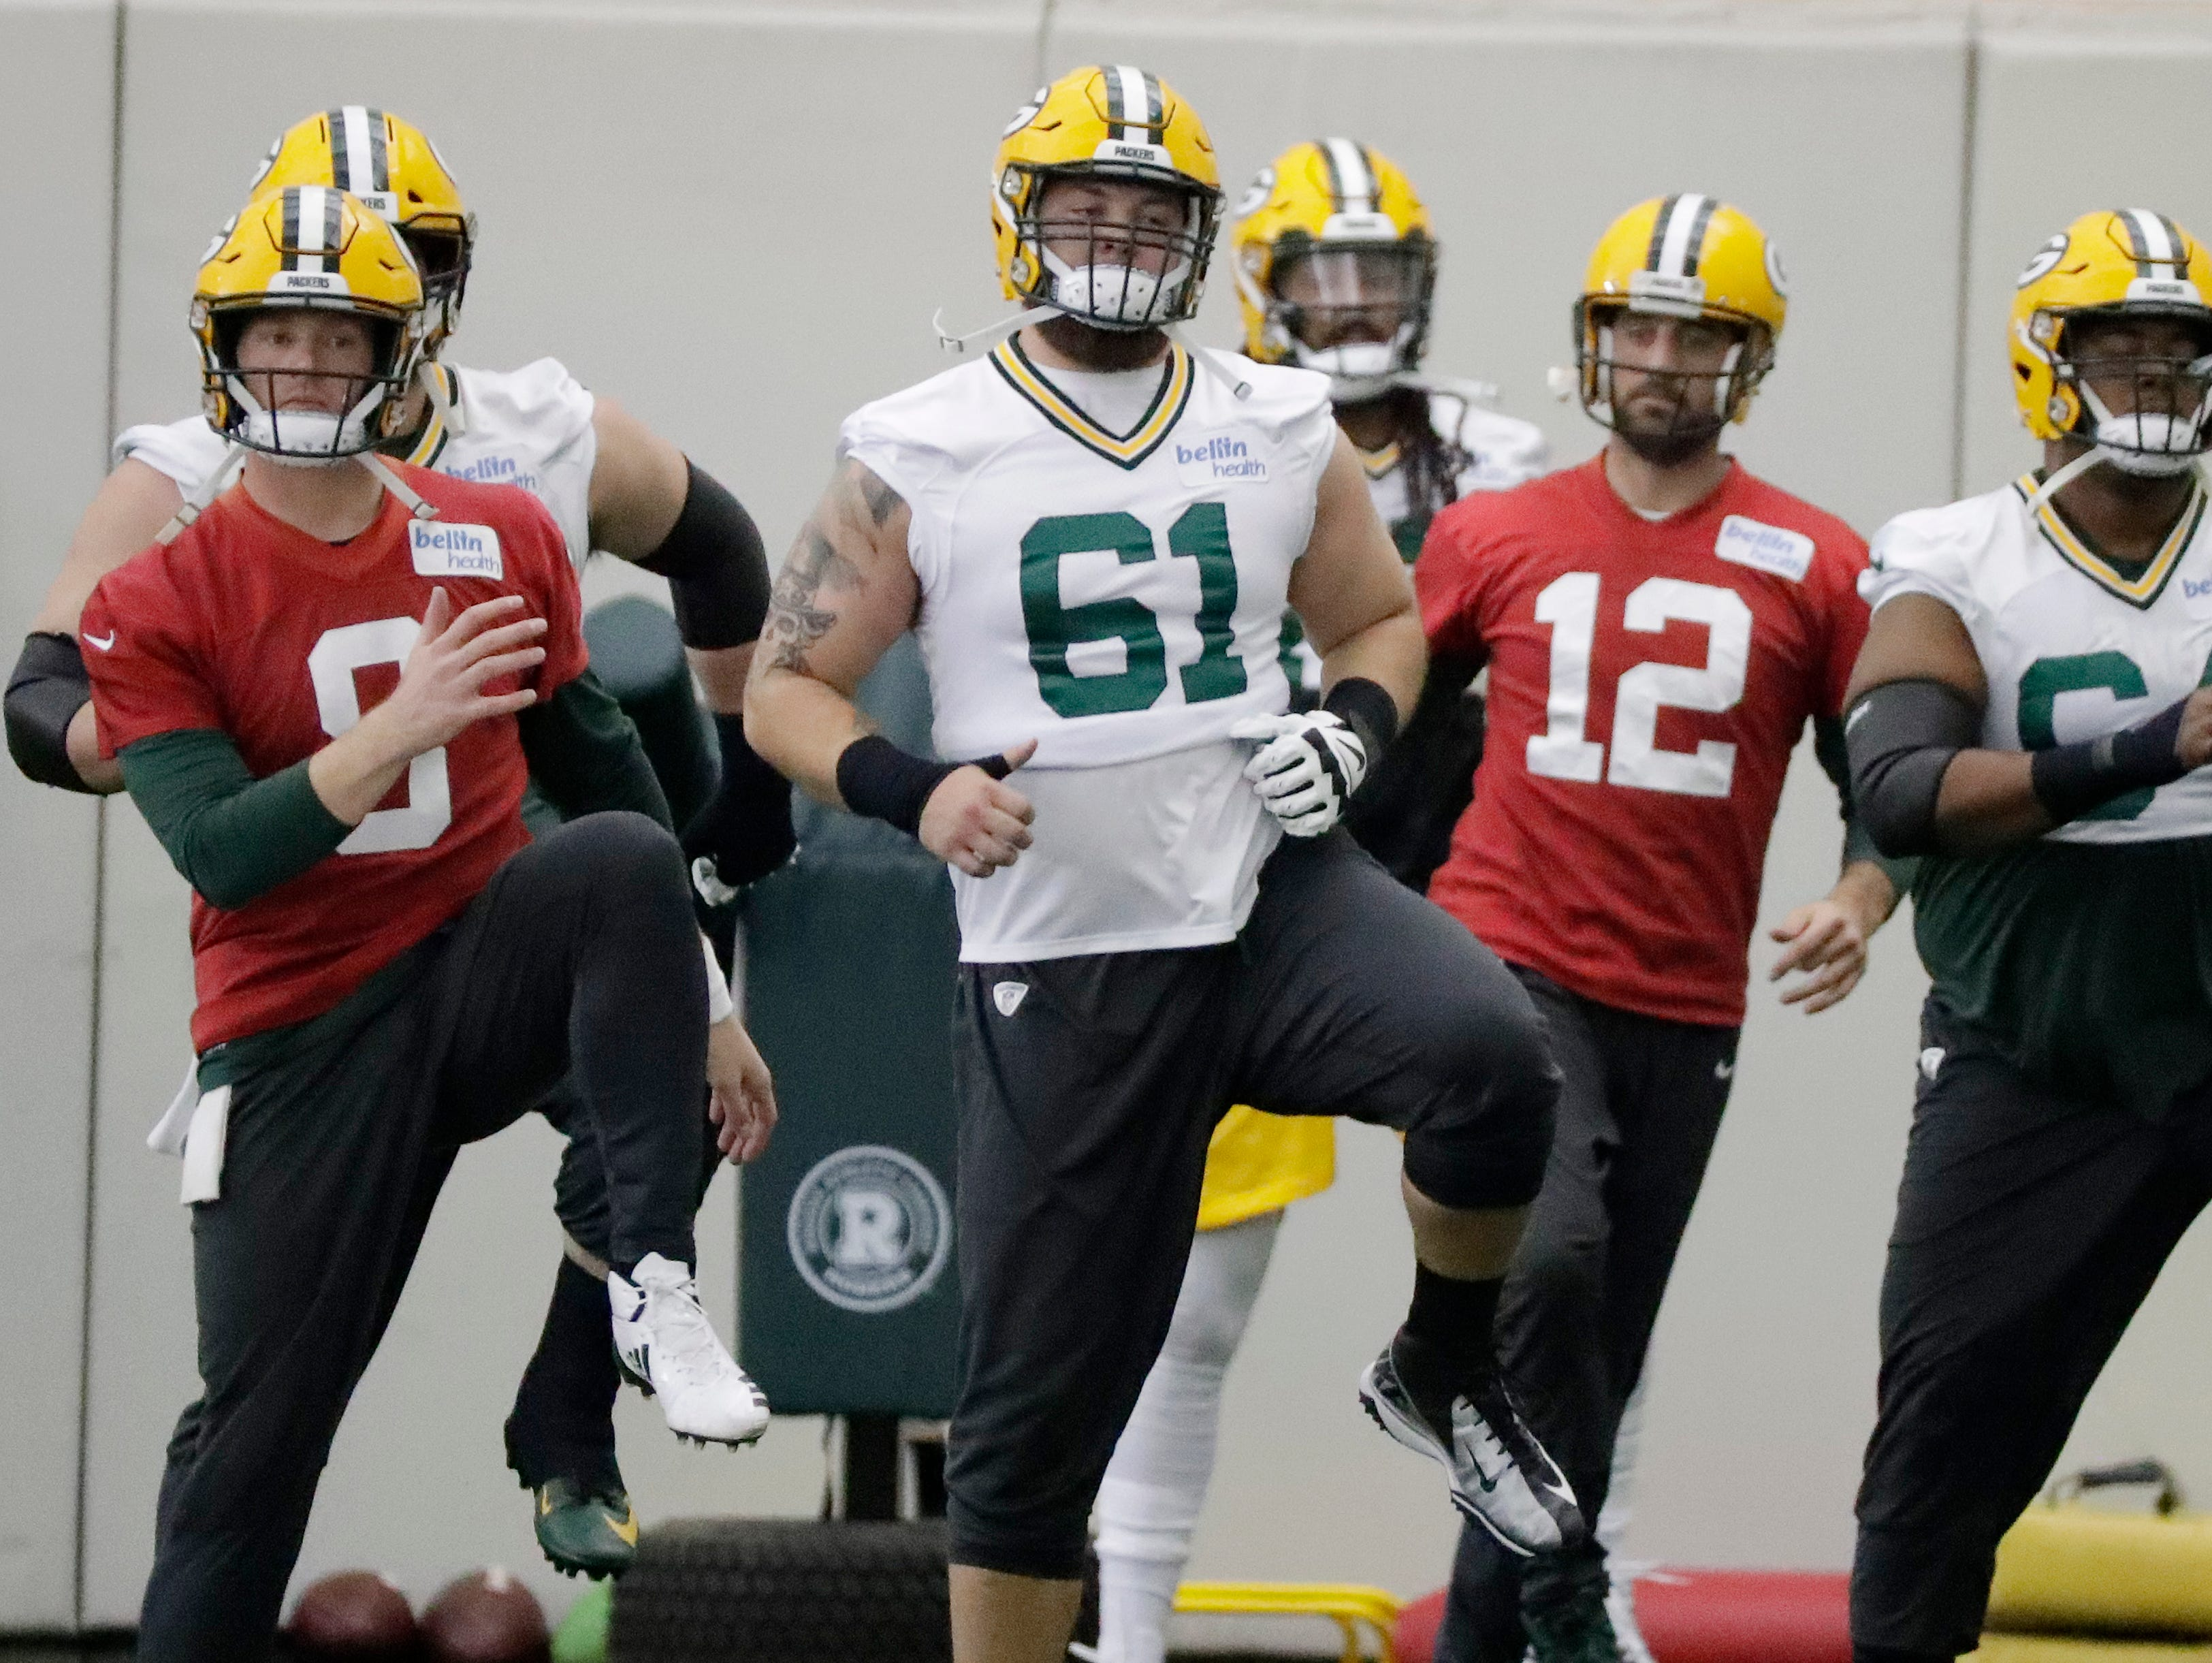 Green Bay Packers offensive guard Cole Madison (61) warms up during a team practice at the Don Hutson Center on Wednesday, April 24, 2019 in Ashwaubenon, Wis.